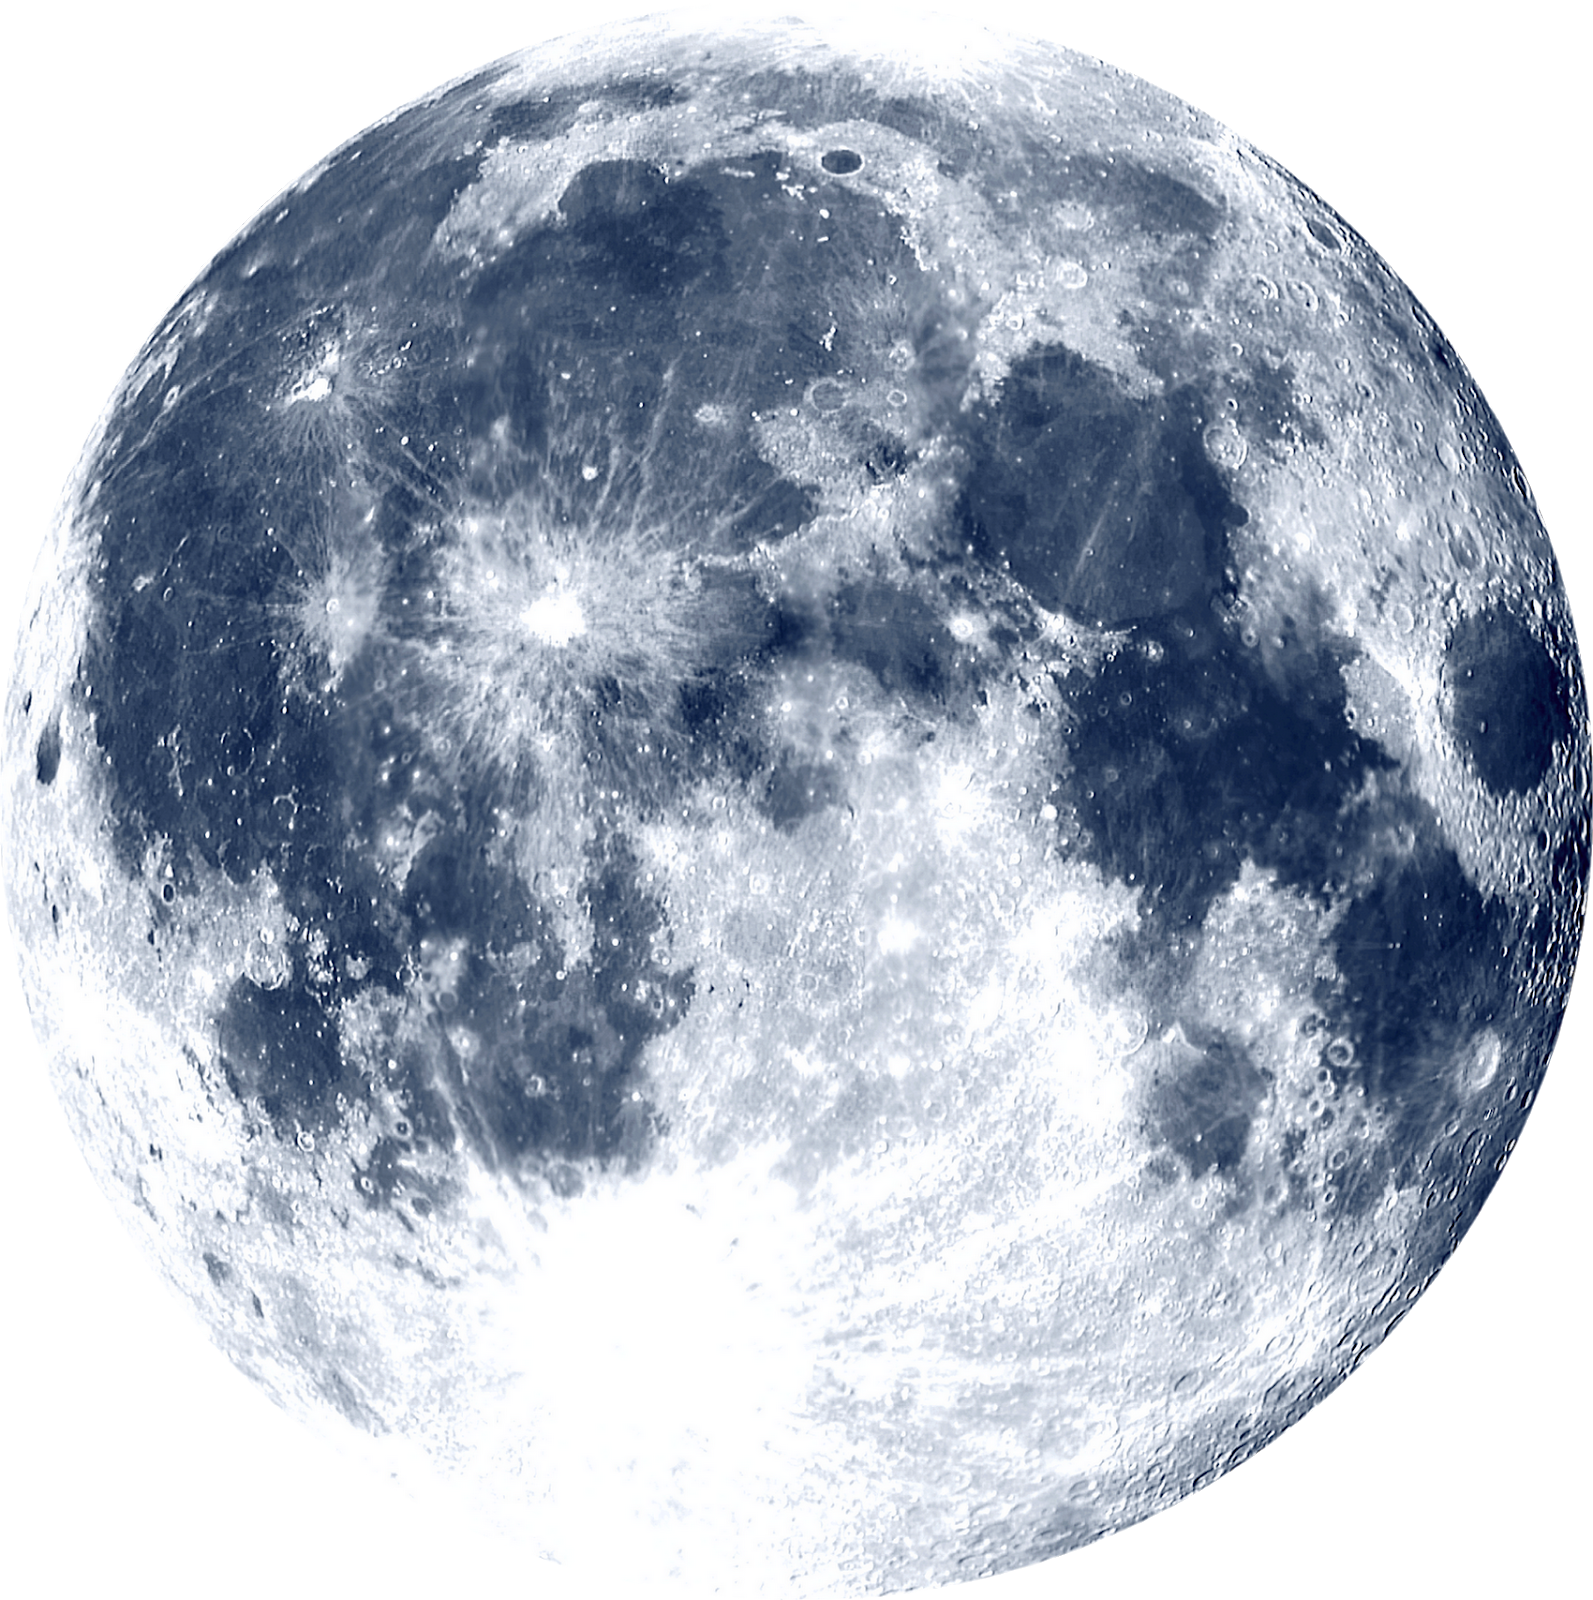 Moon Png Hd & Free Moon Hd.png Transparent Images #60632 ...